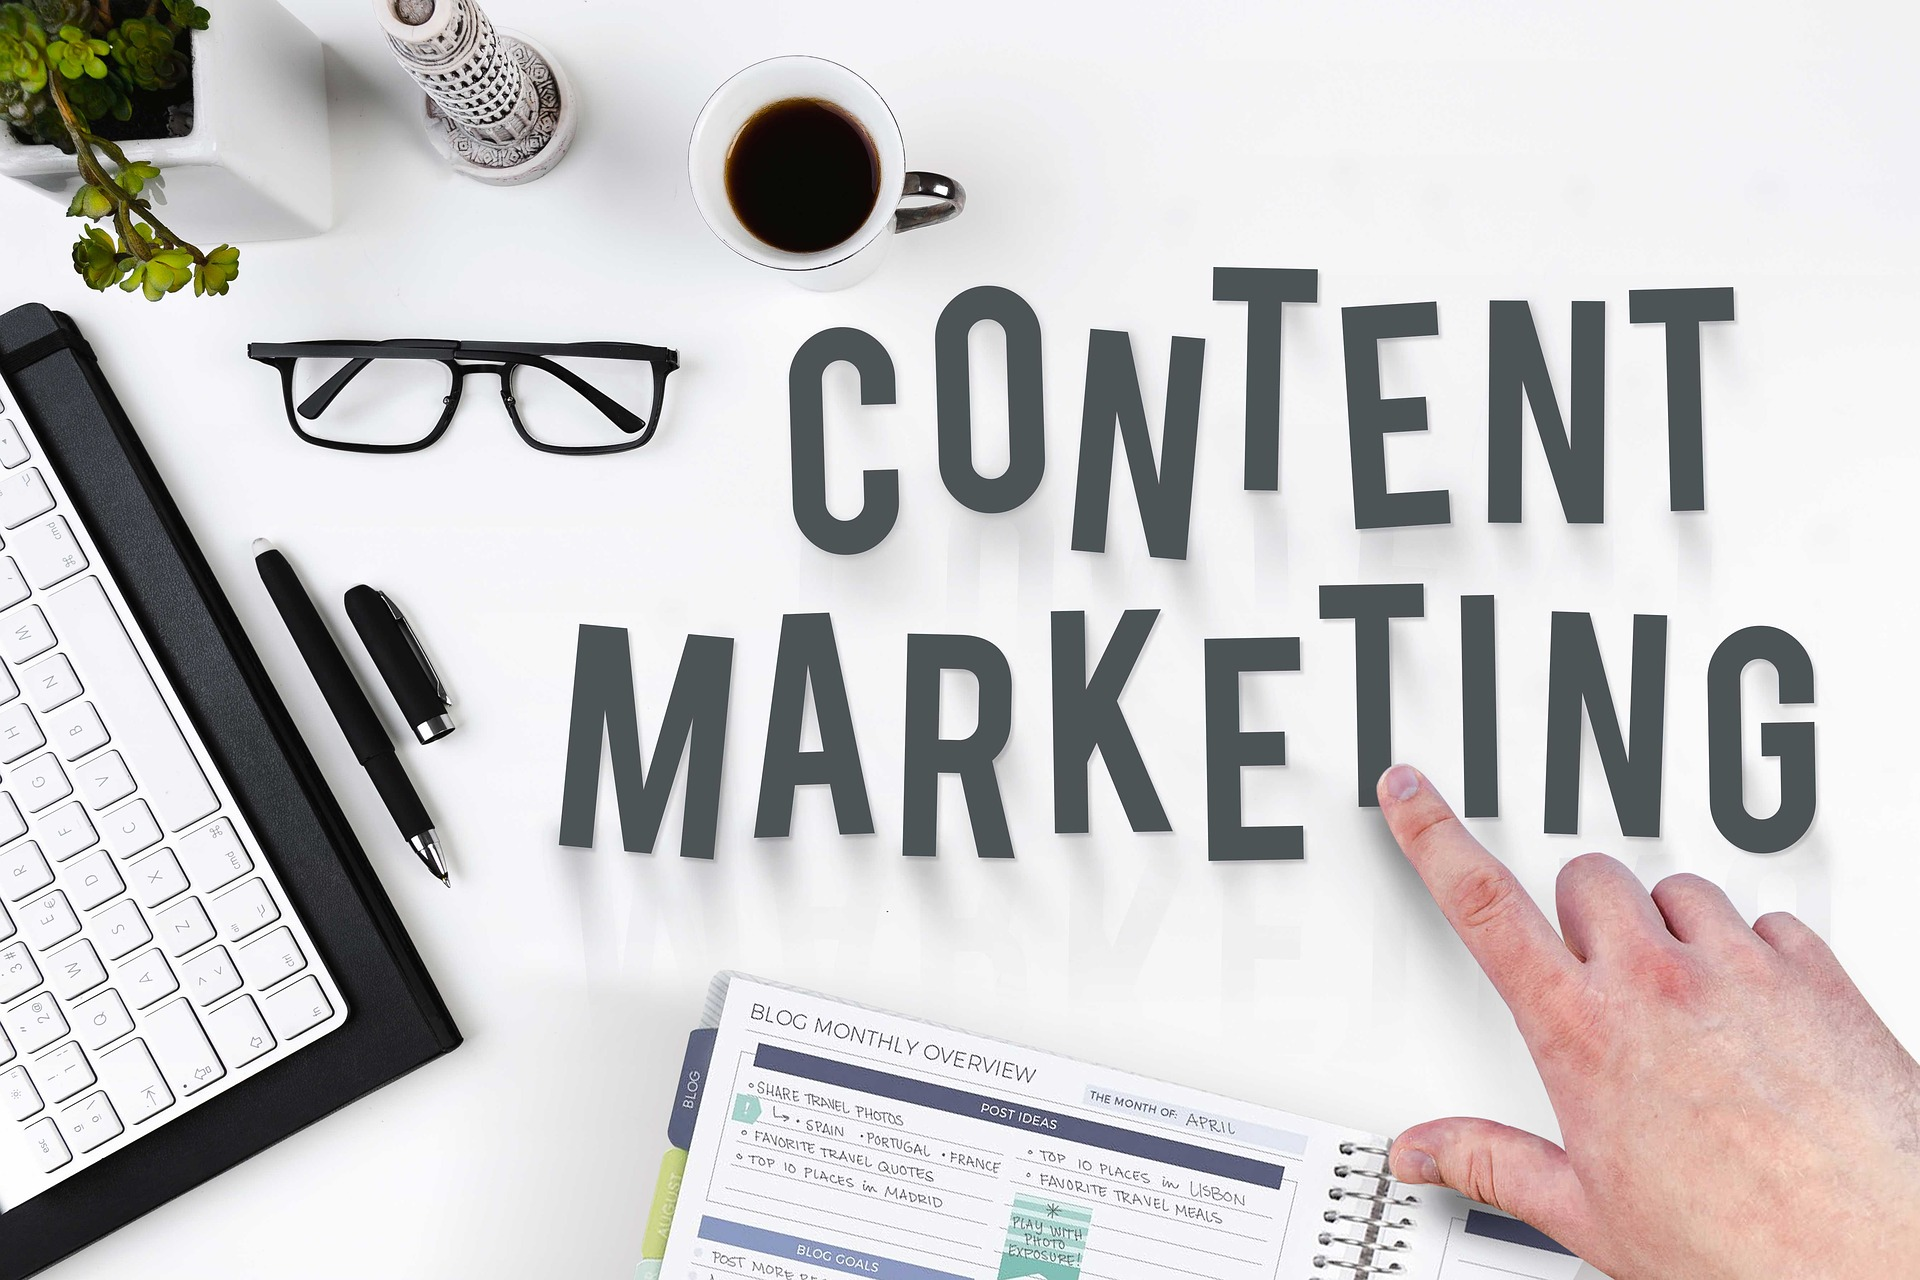 Improve your Content Marketing ROI with these tips.